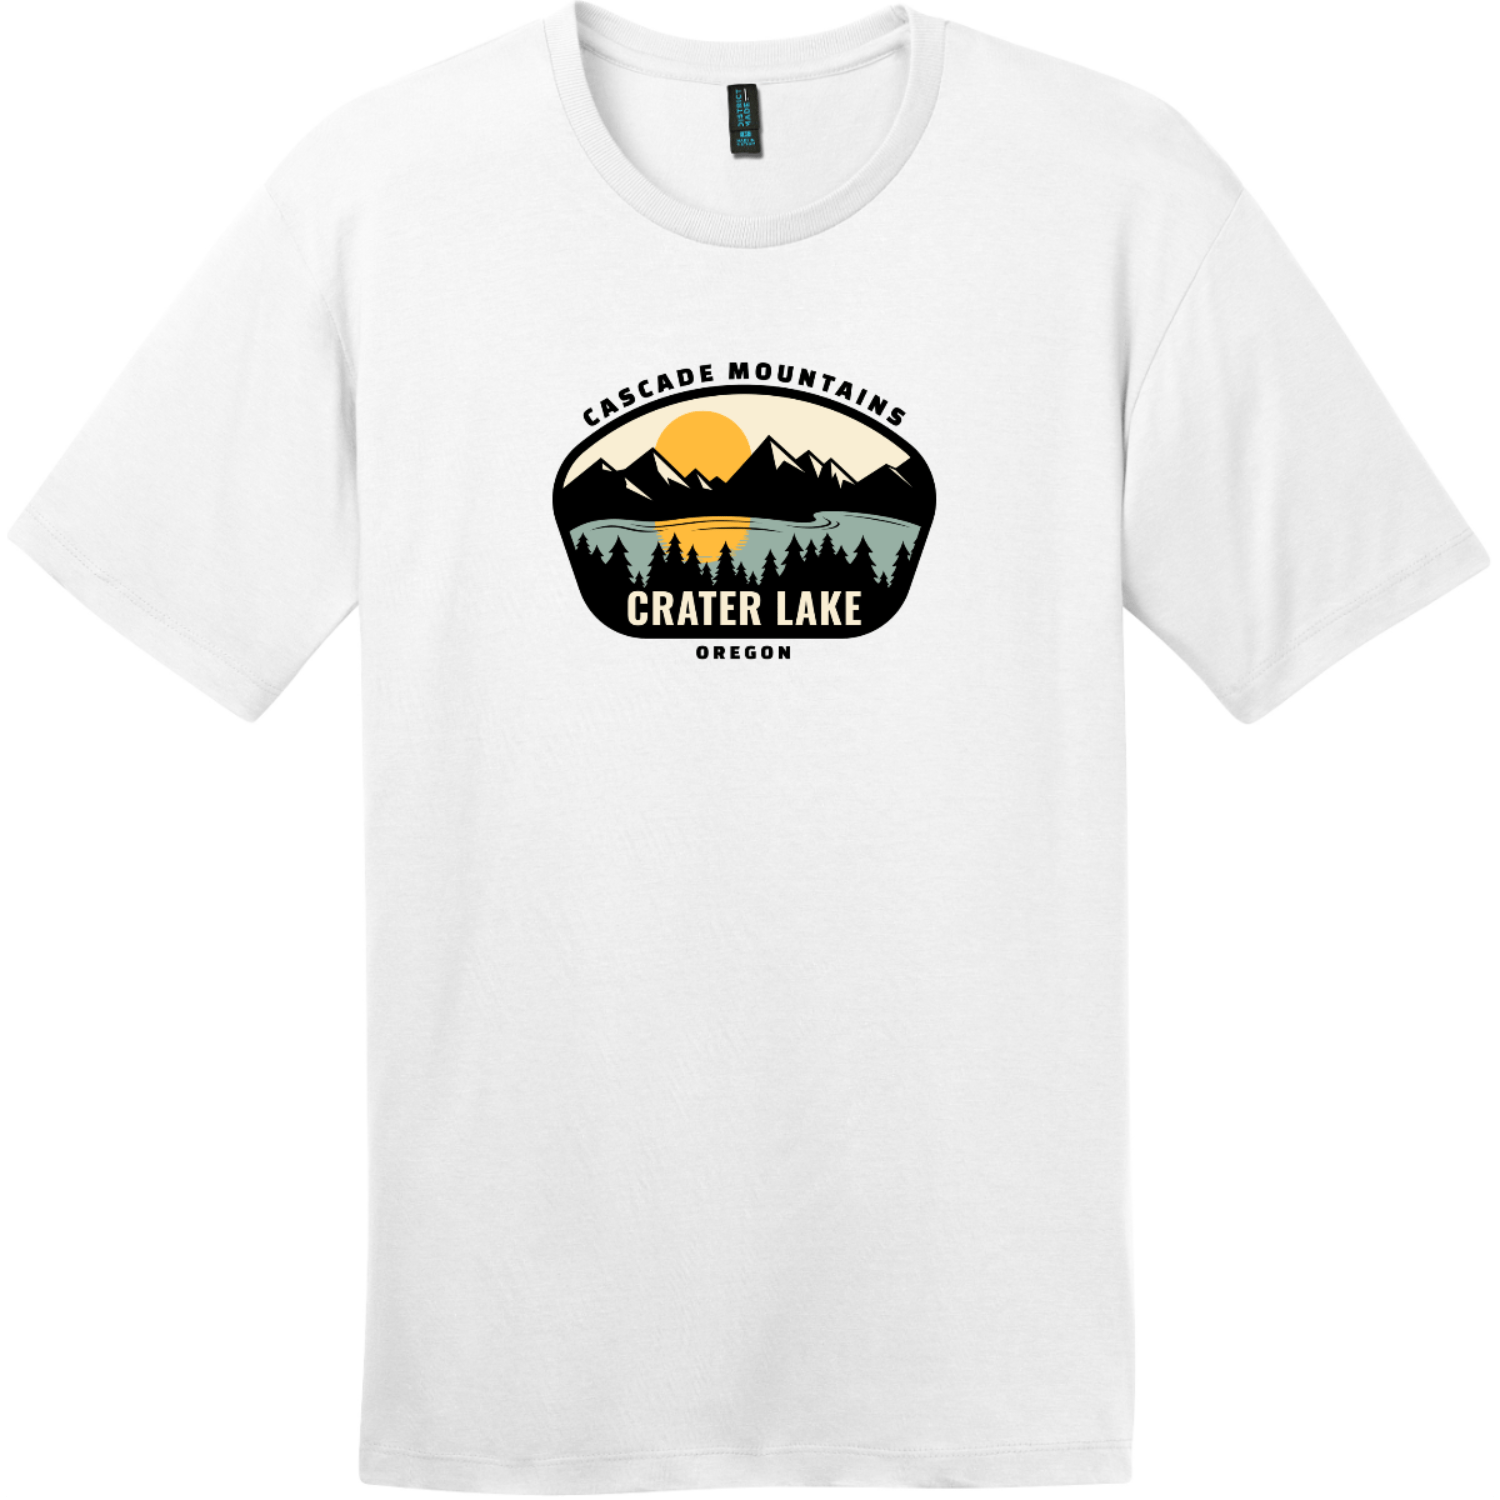 Crater Lake Oregon T-Shirt Bright White District Perfect Weight Tee DT104